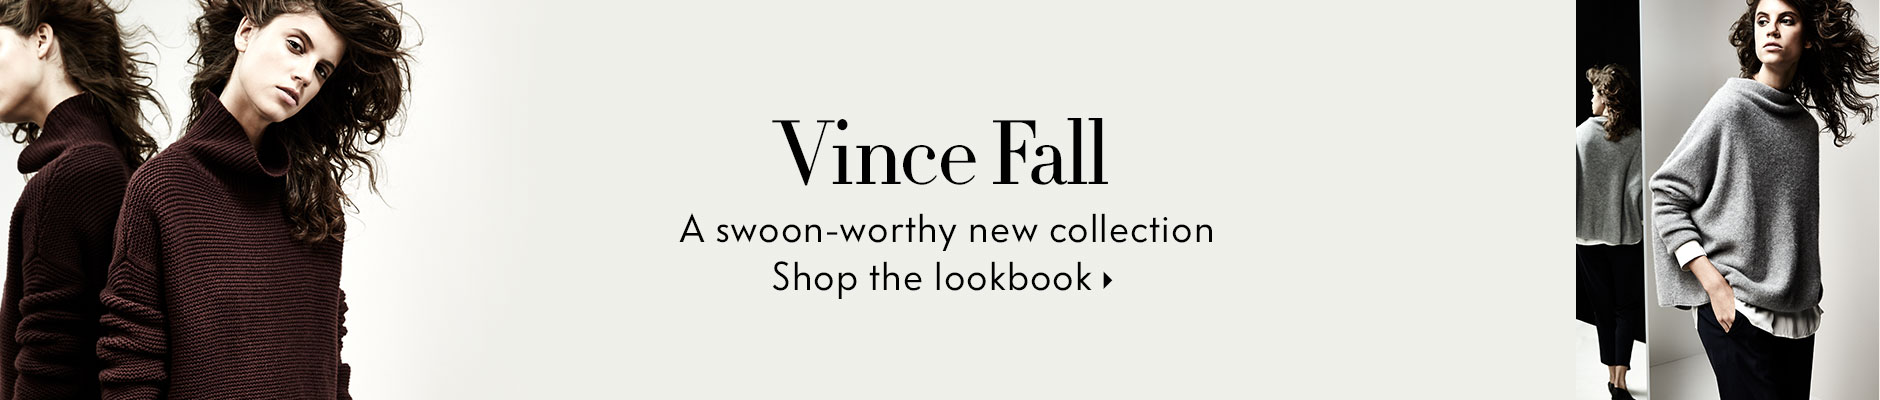 Vince Fall A swoon-worthy new collection